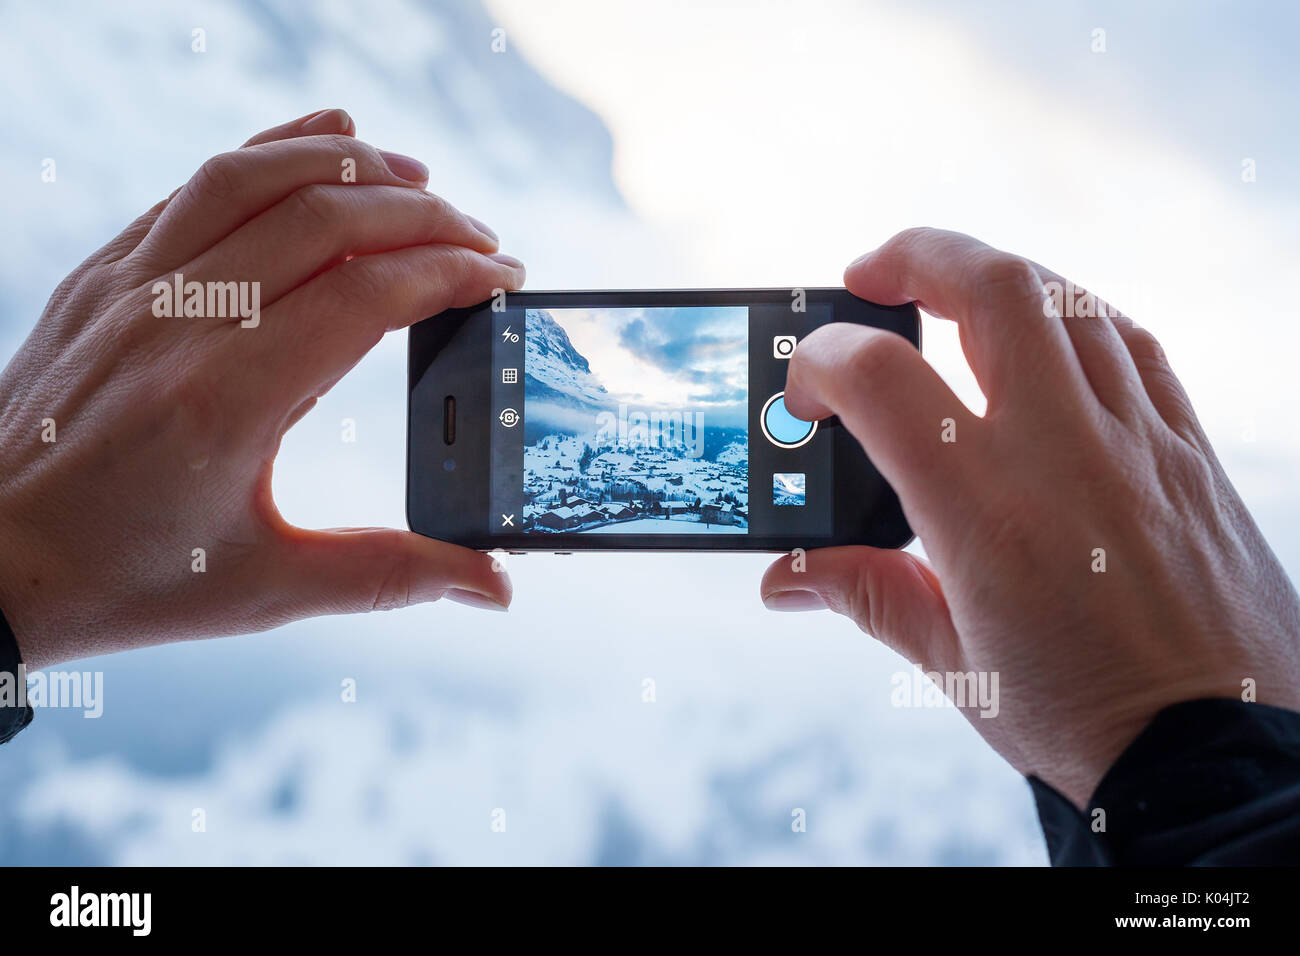 GRINDELWALD, SWITZERLAND - FEBRUARY 4, 2014: Woman taking a photograph of mountains using the Instagram App on an - Stock Image